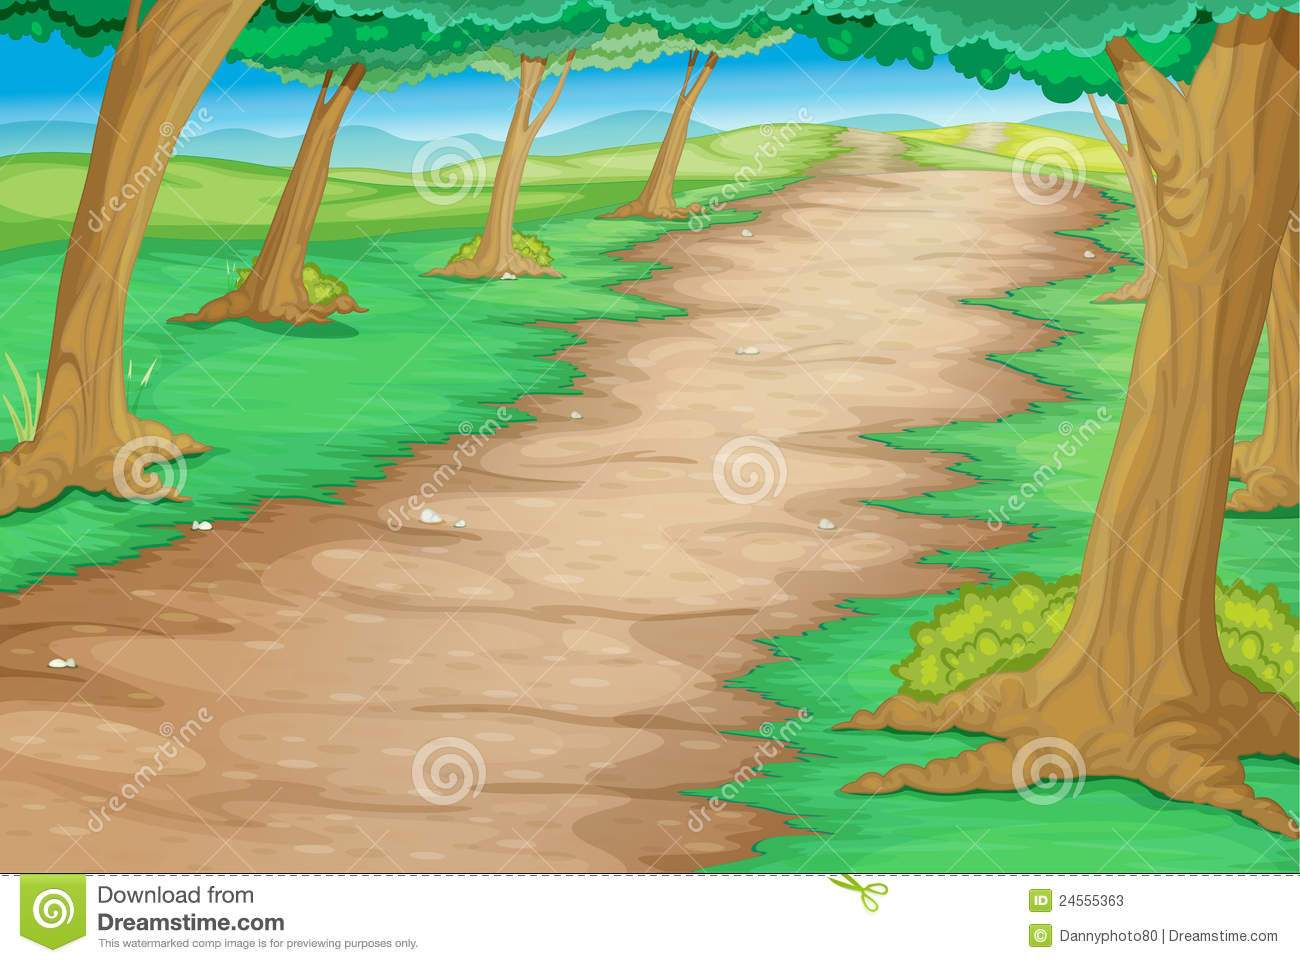 A long drit path clipart graphic free library Dirt path clipart 1 » Clipart Portal graphic free library